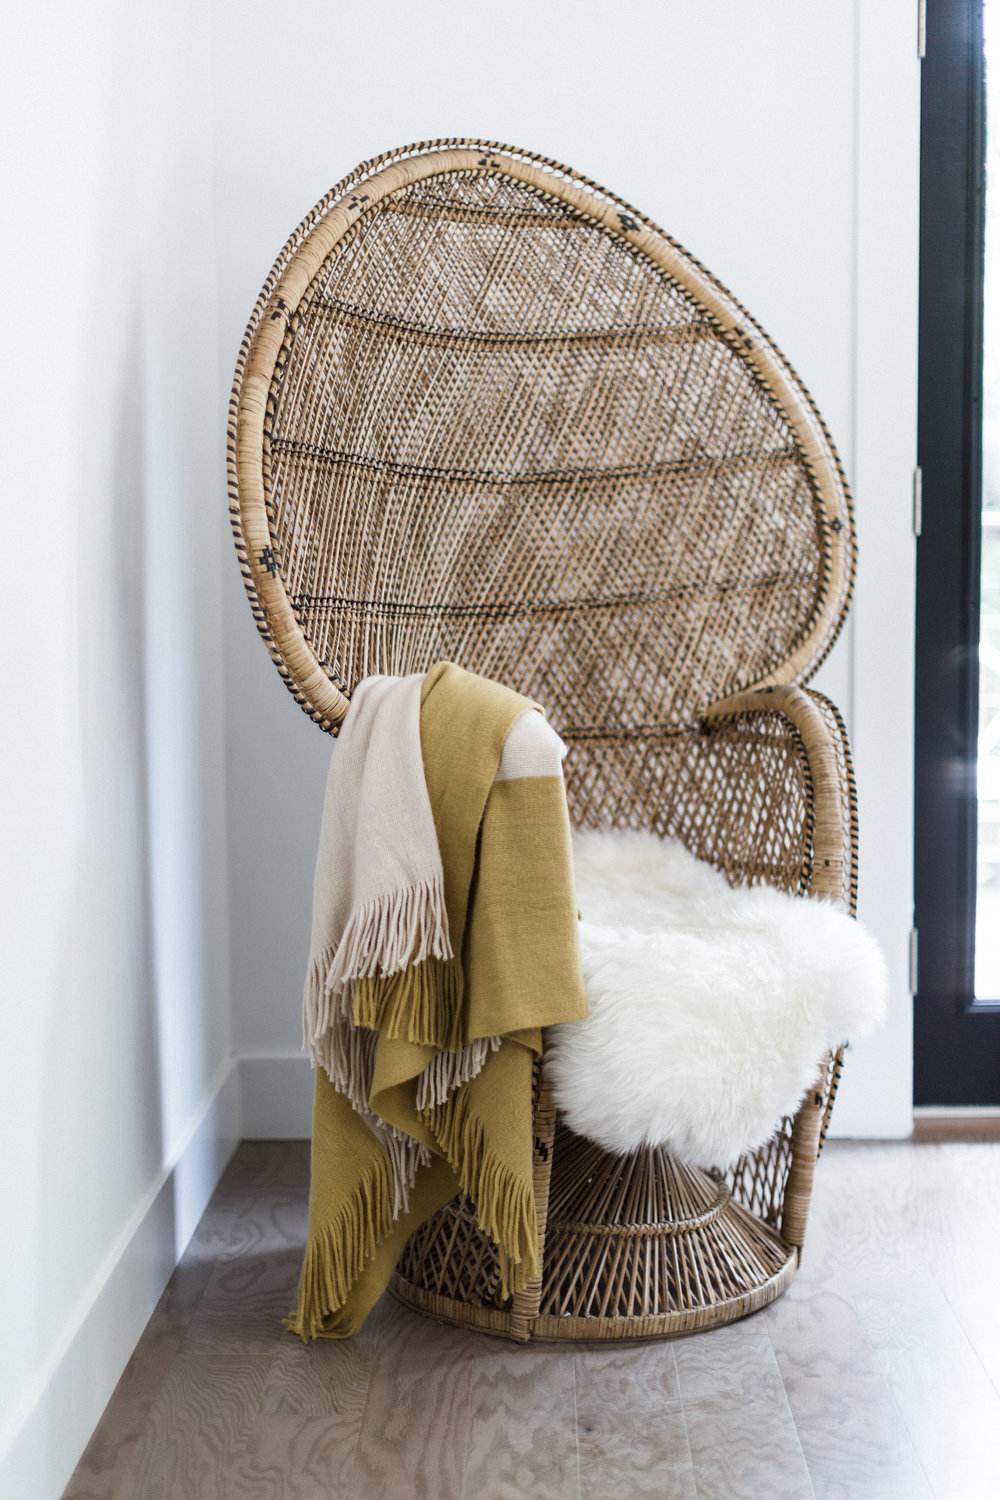 Our peacock chair looks right at home in this bedroom.